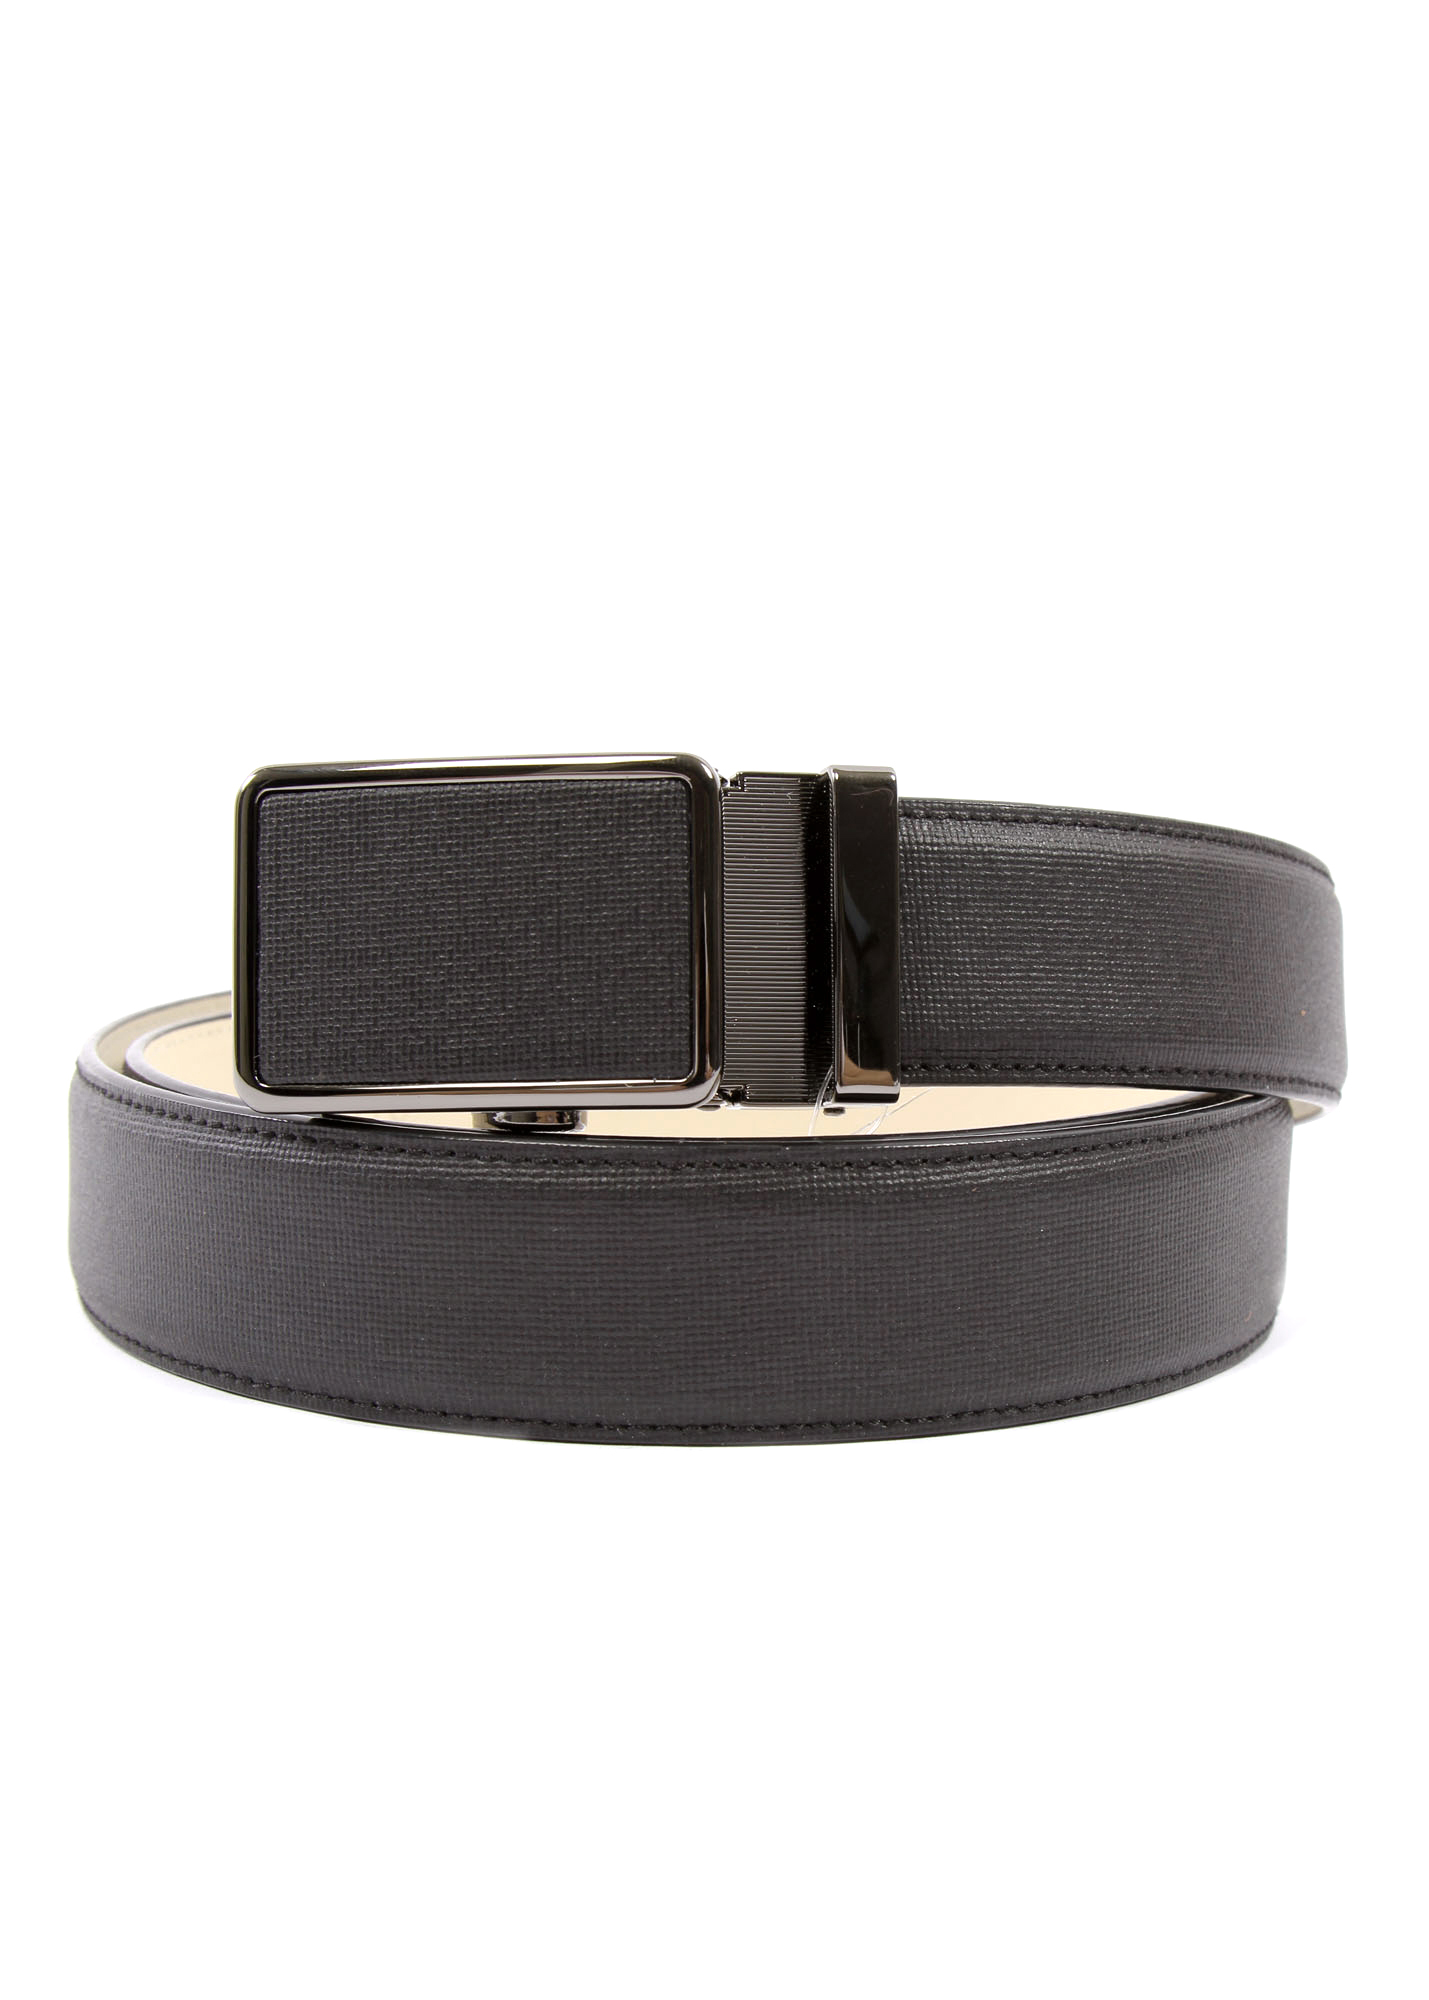 Also available, latigo or natural cowhide leather strips and leather straps that can be used for horse tack, rifle slings, handbag straps, case straps and more. Our leather belts and leather strips are cut in our Fort Worth, Texas factory.